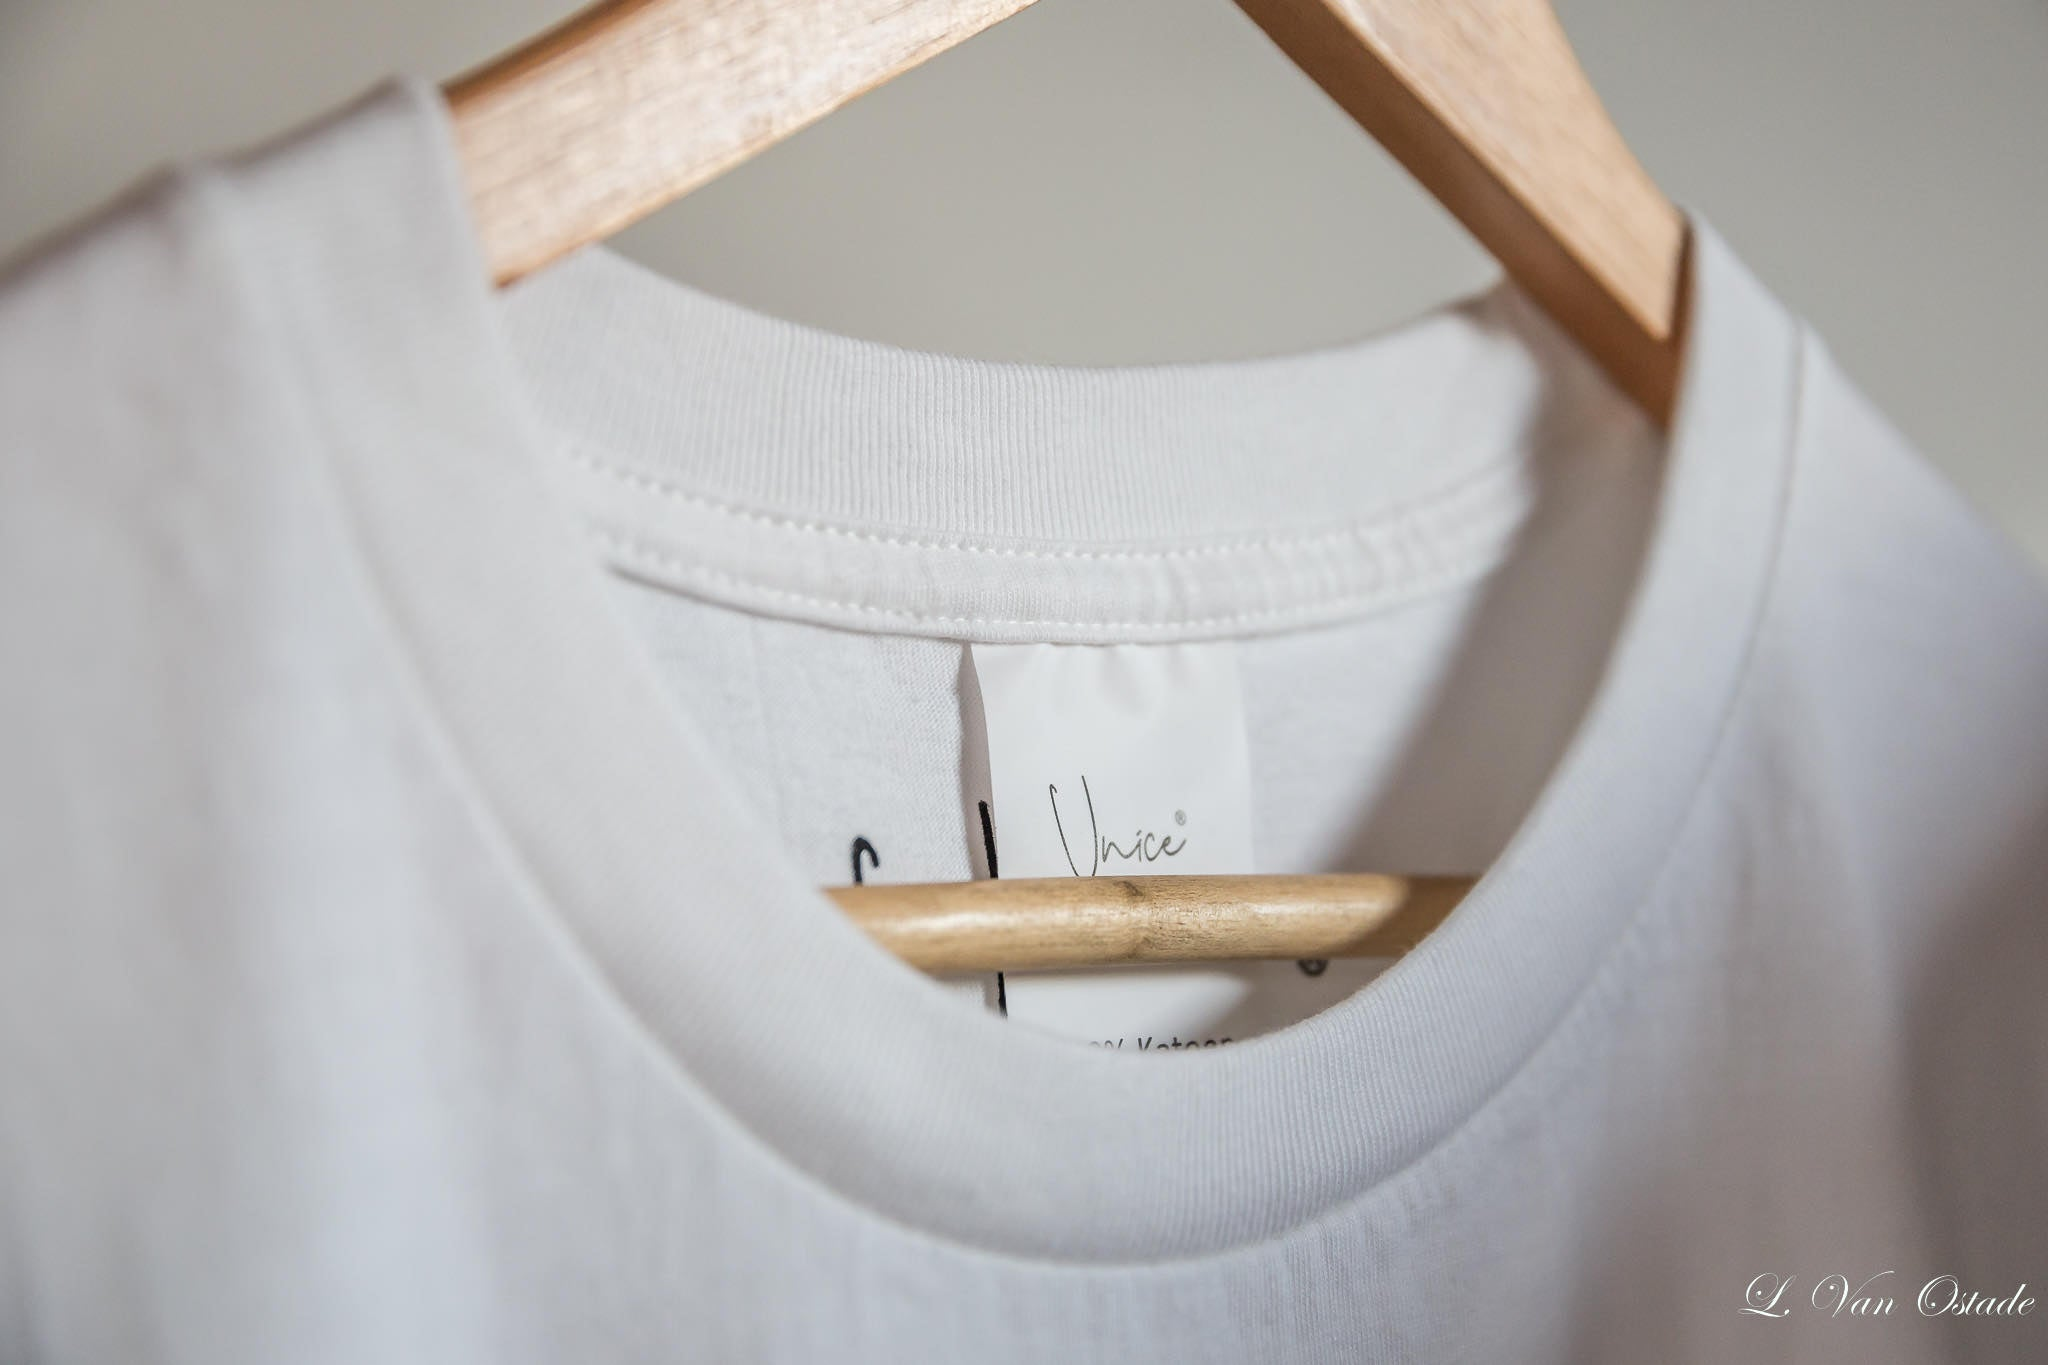 Unice T-shirt on hanger